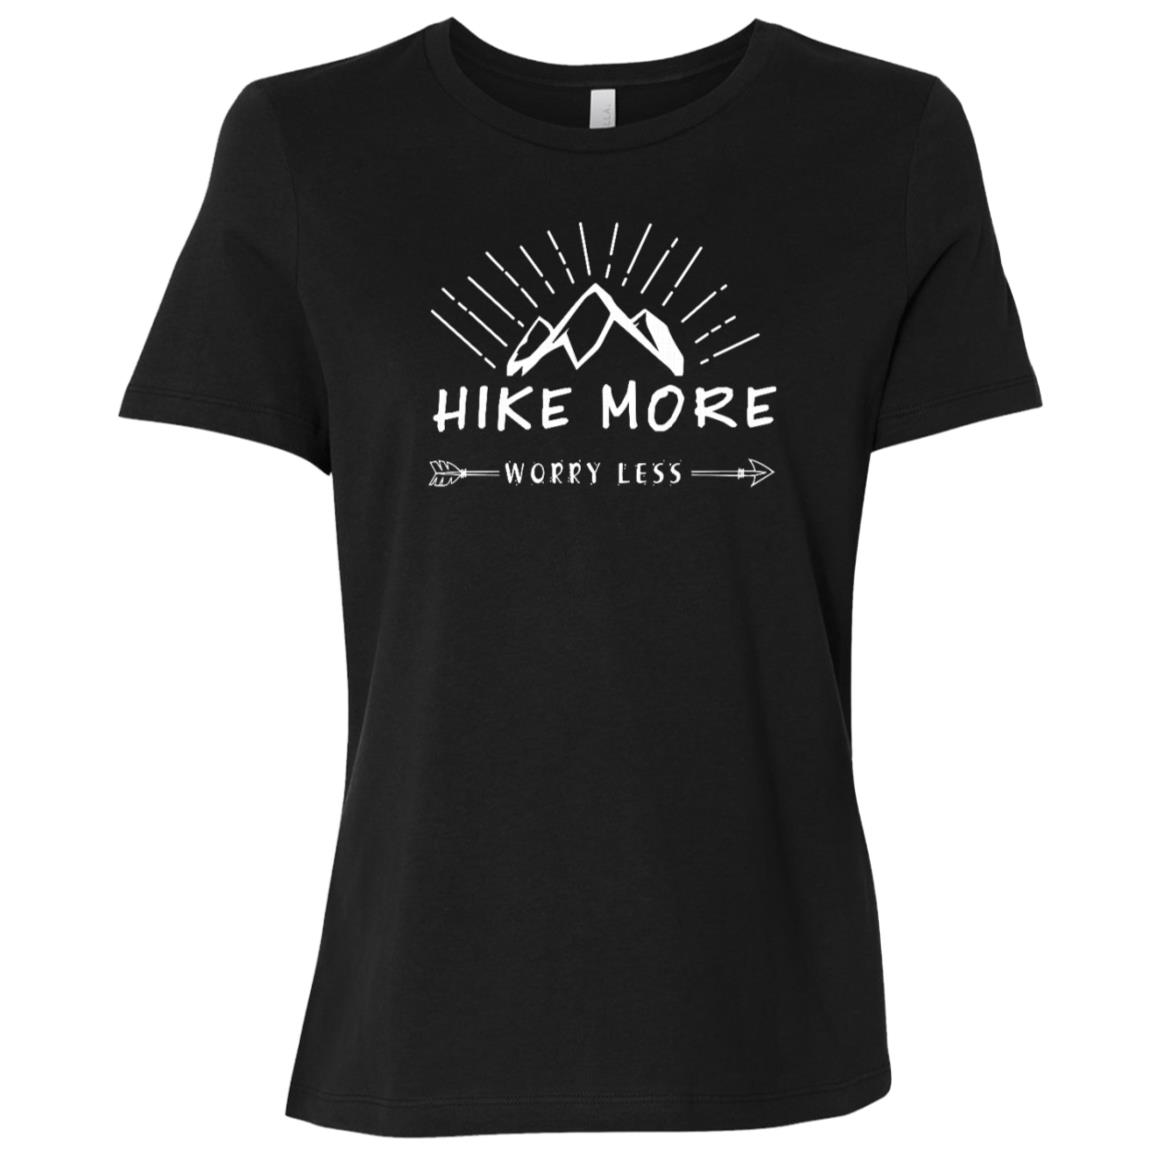 Hike More, Worry Less – Hunting Outdoor Women Short Sleeve T-Shirt